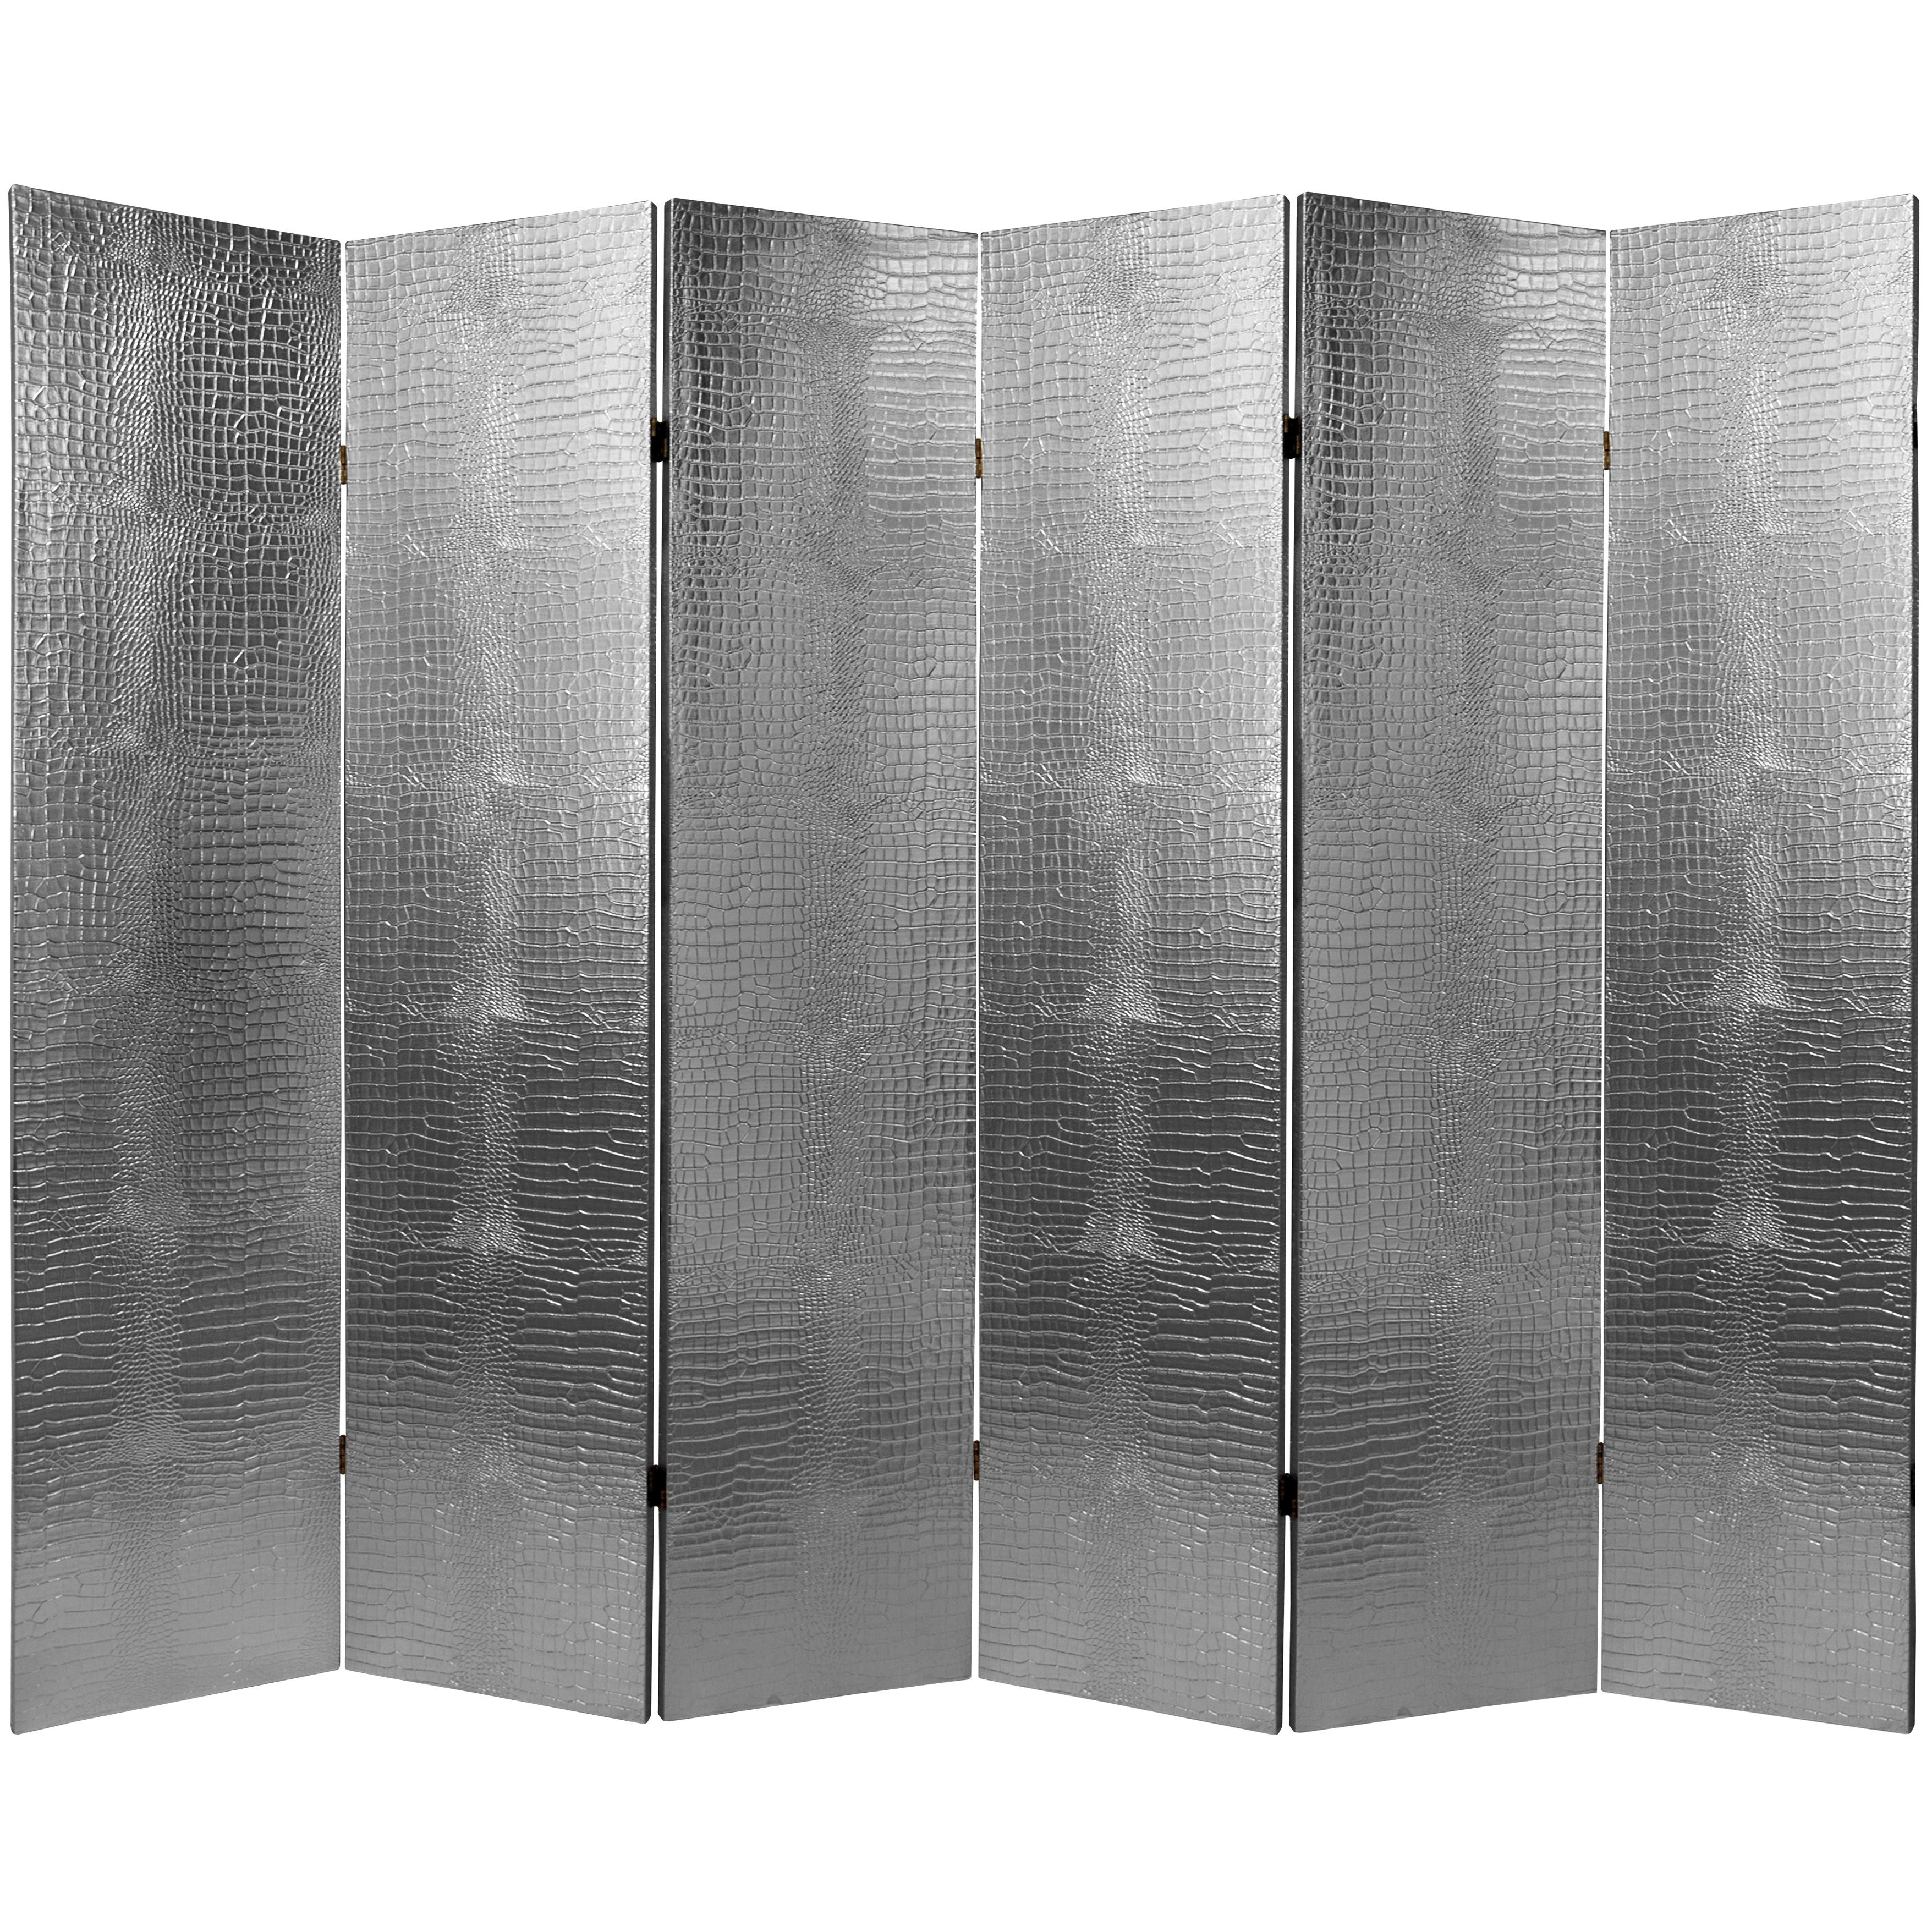 6 Ft Tall Faux Leather Silver Crocodile Room Divider Free